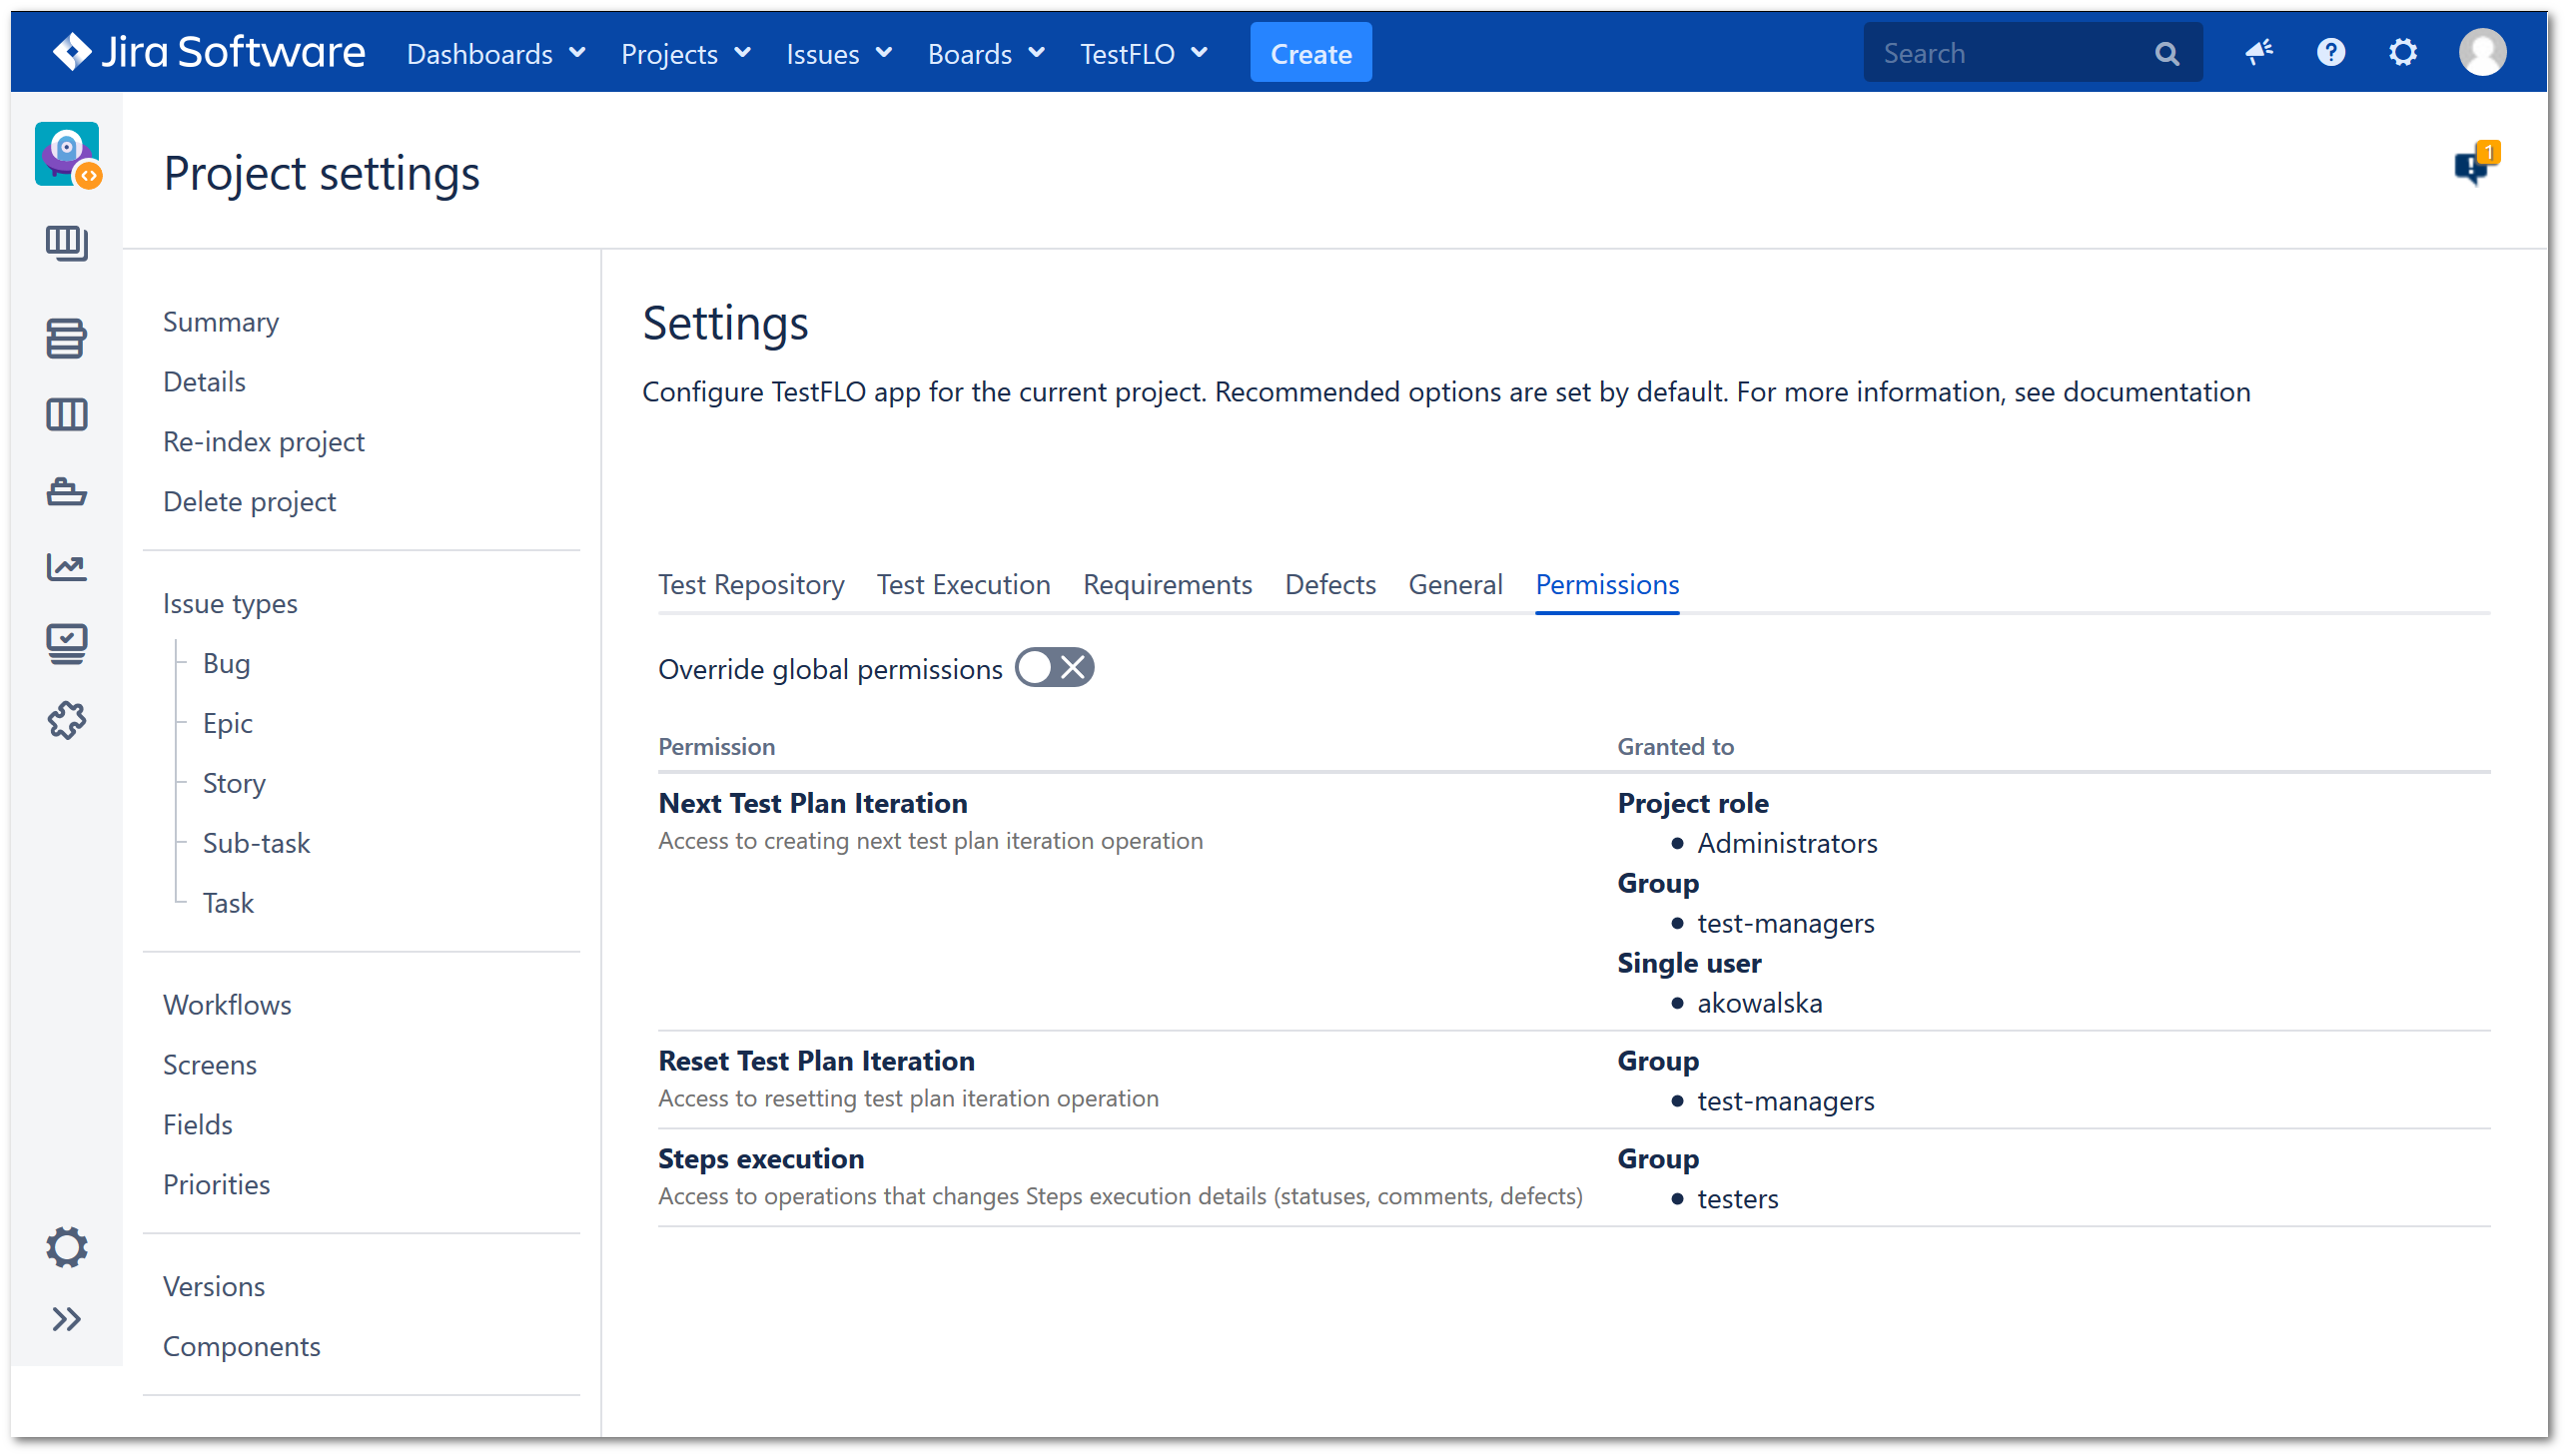 Permissions in project settings